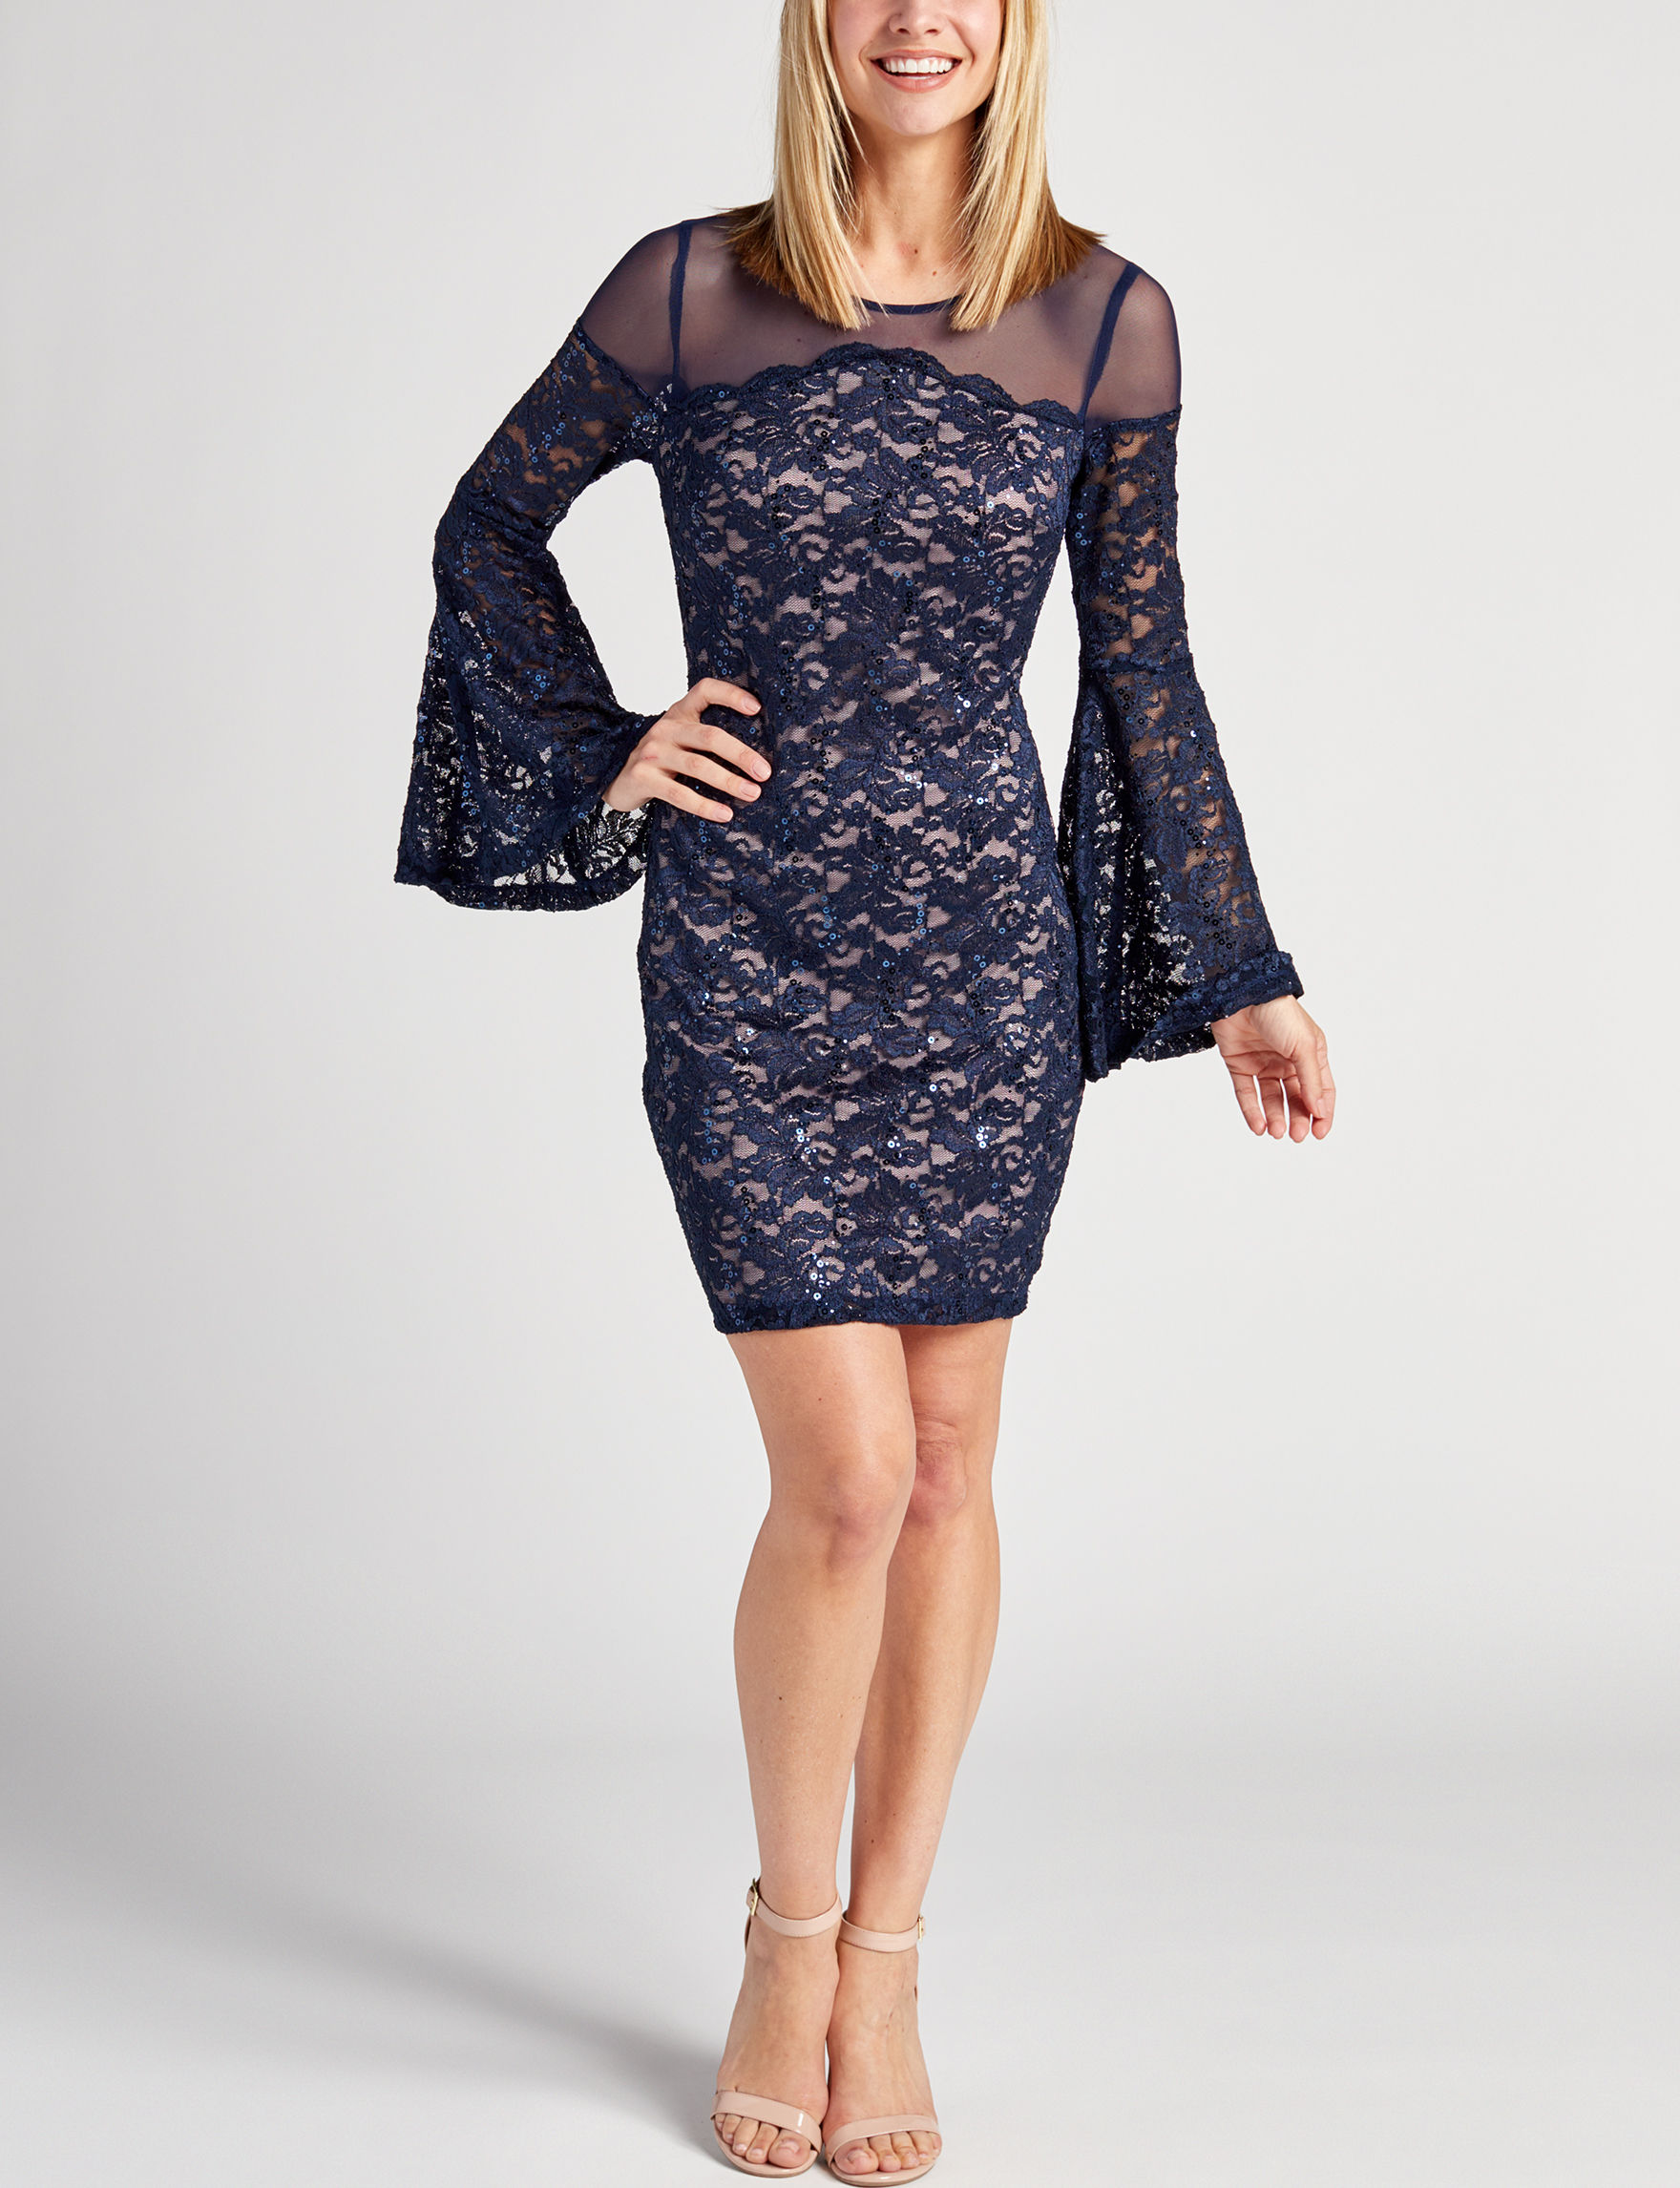 Sequin Hearts Navy Cocktail & Party Evening & Formal